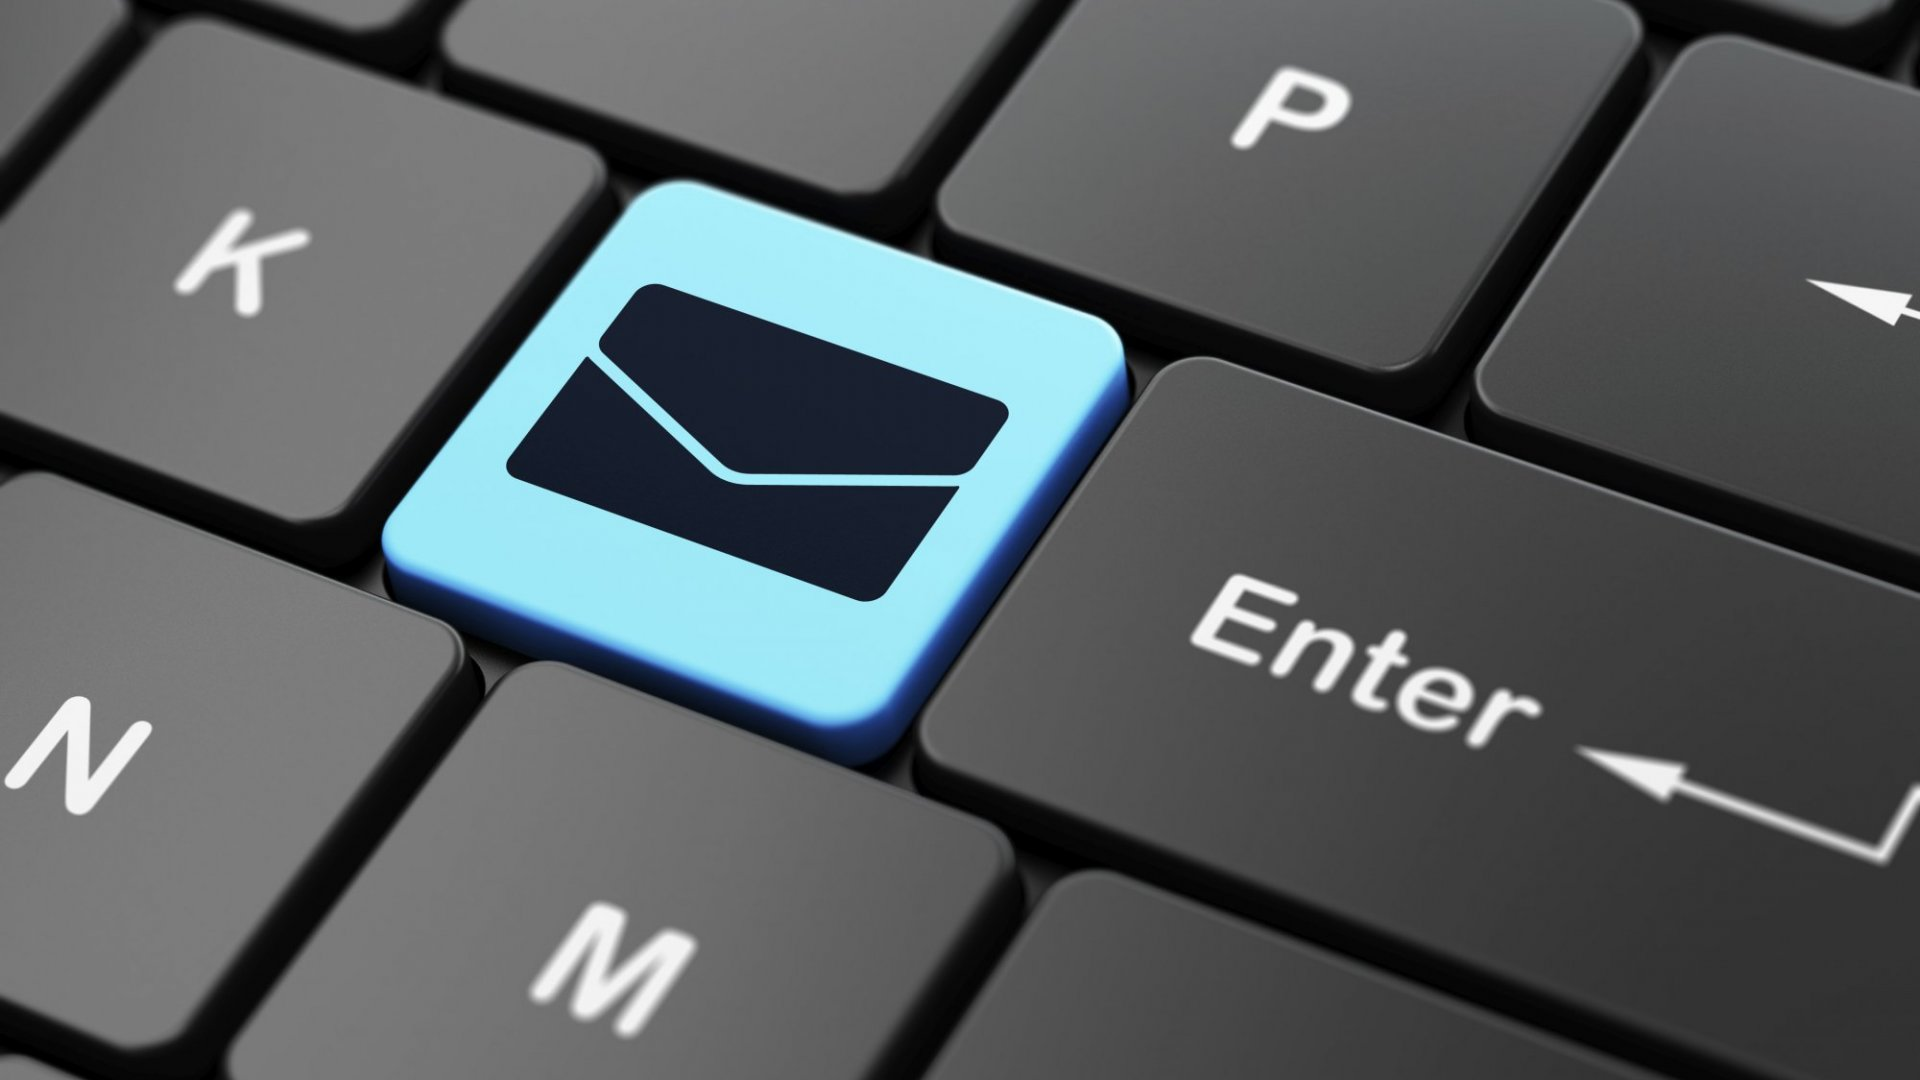 The 1 Powerful Rule That Will Revolutionize Your Email